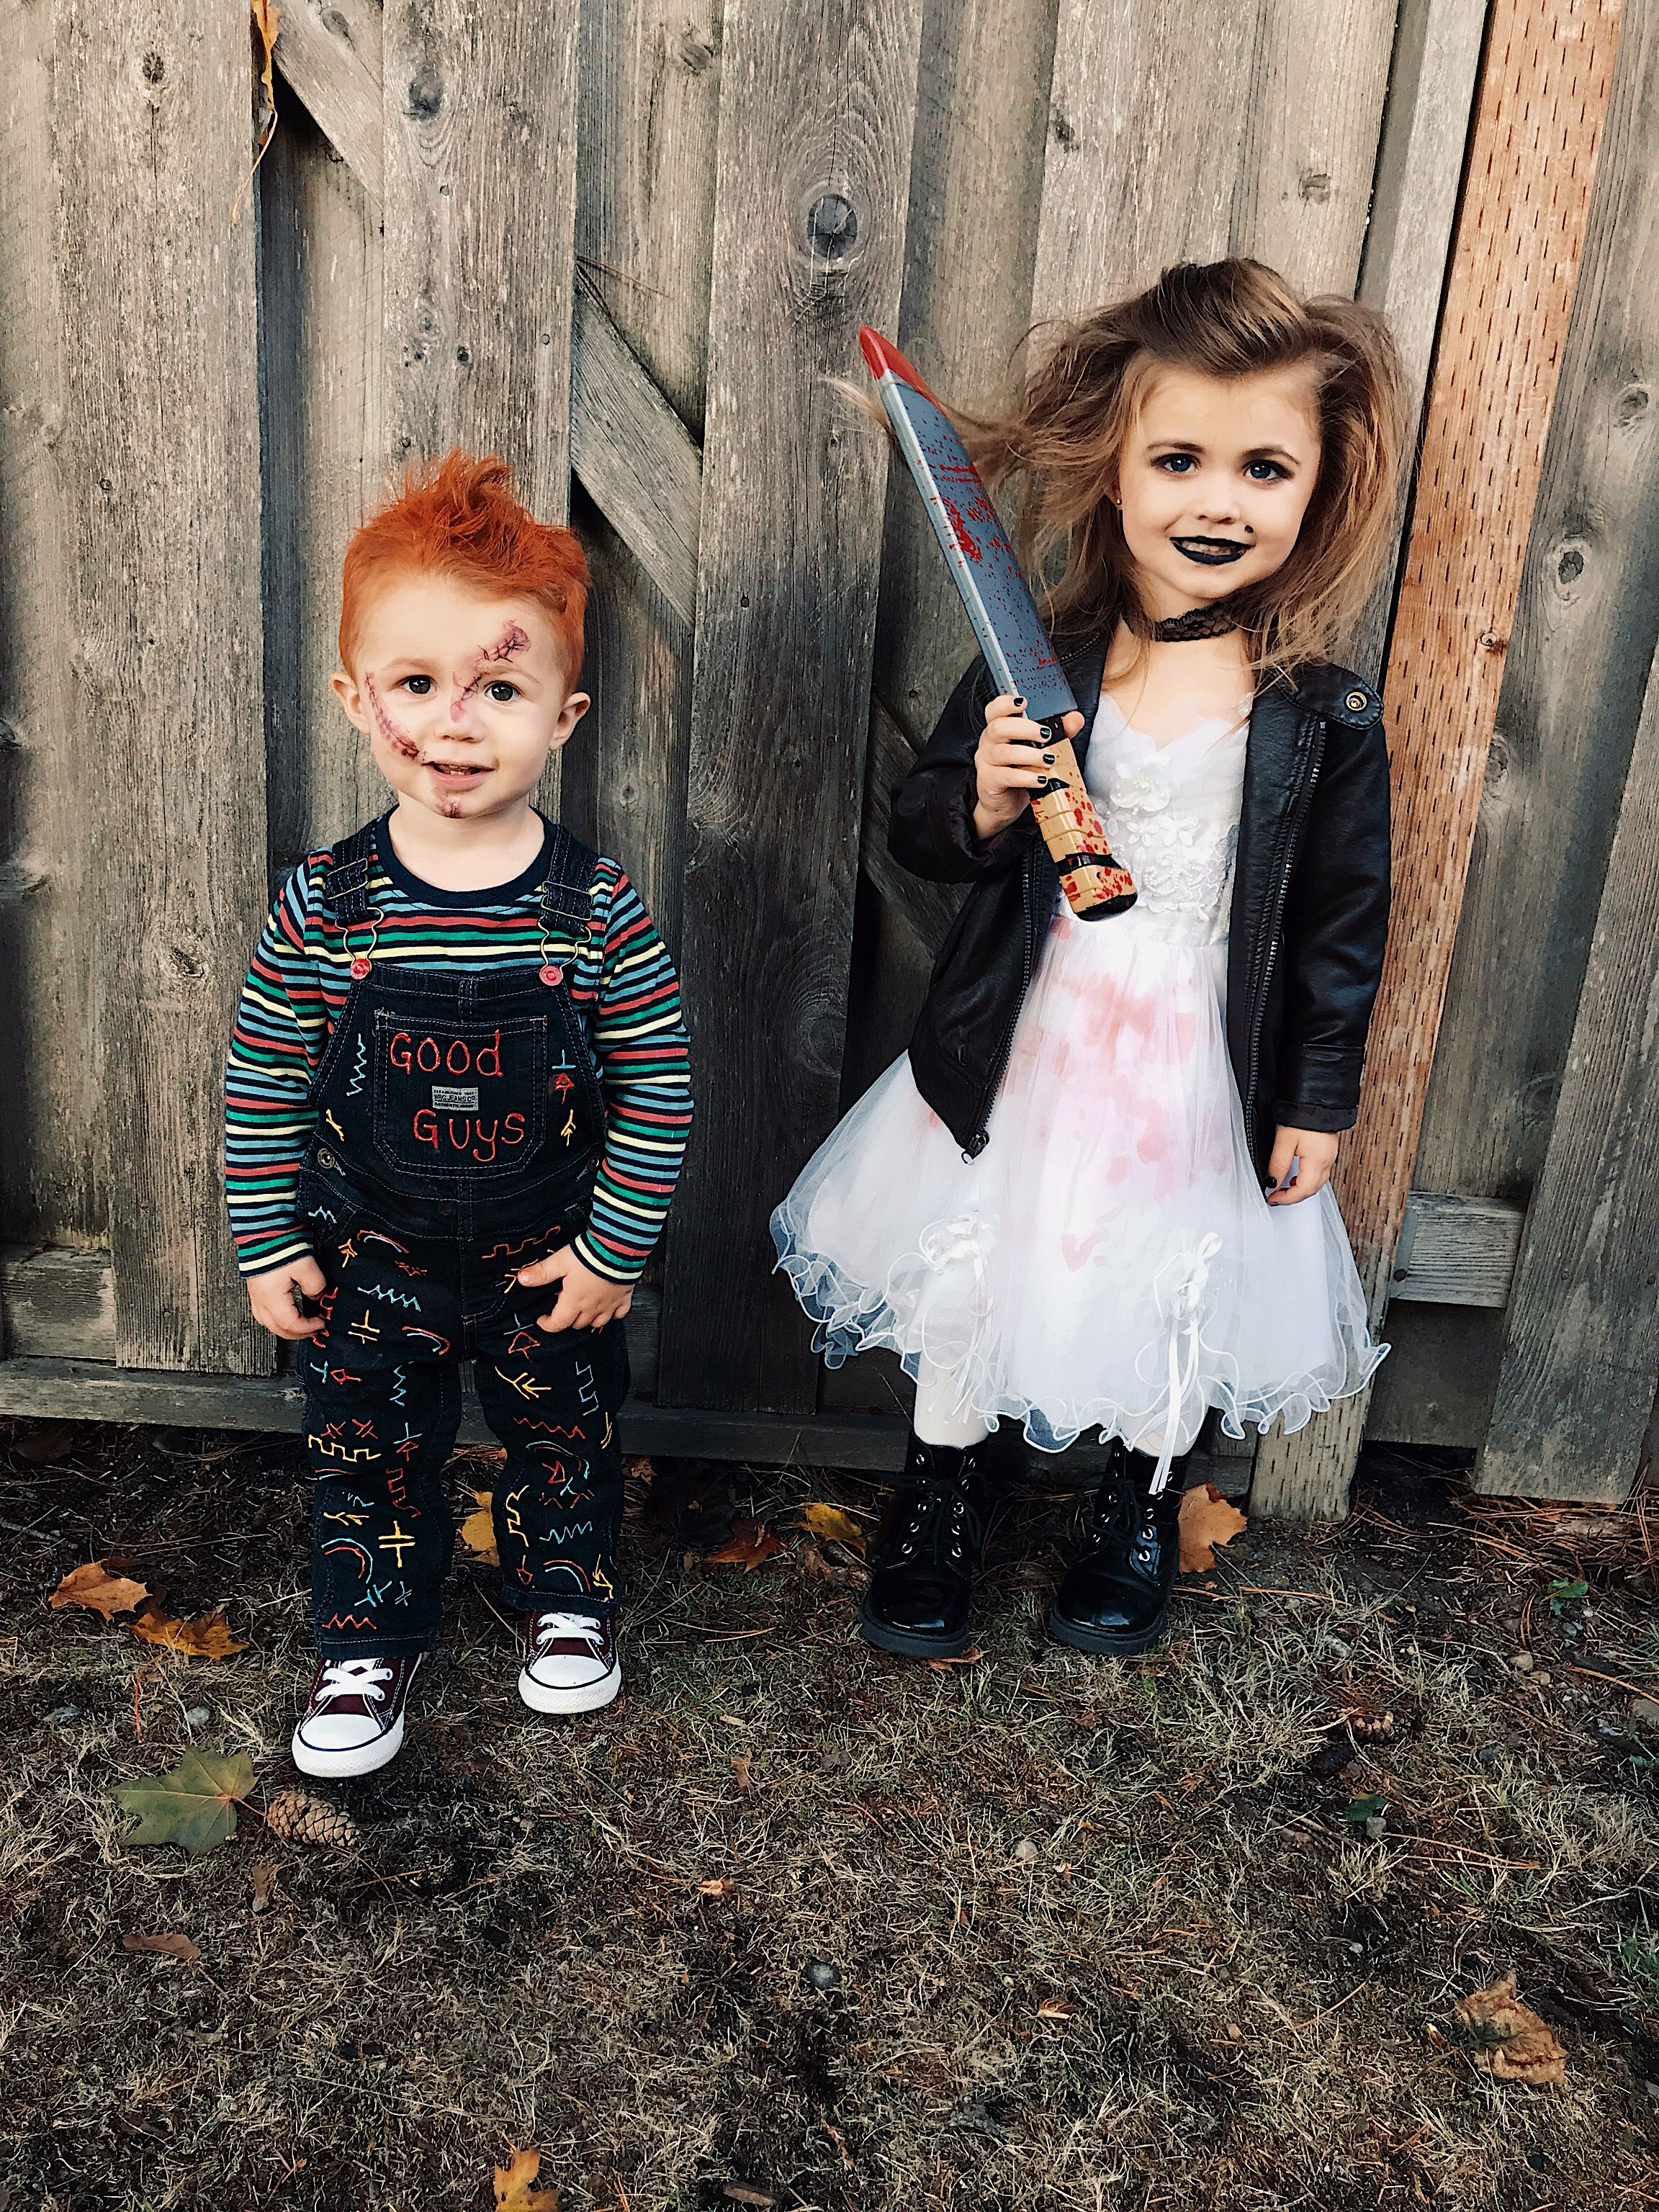 chucky and his bride sibling costumes toddler duo costumes chucky